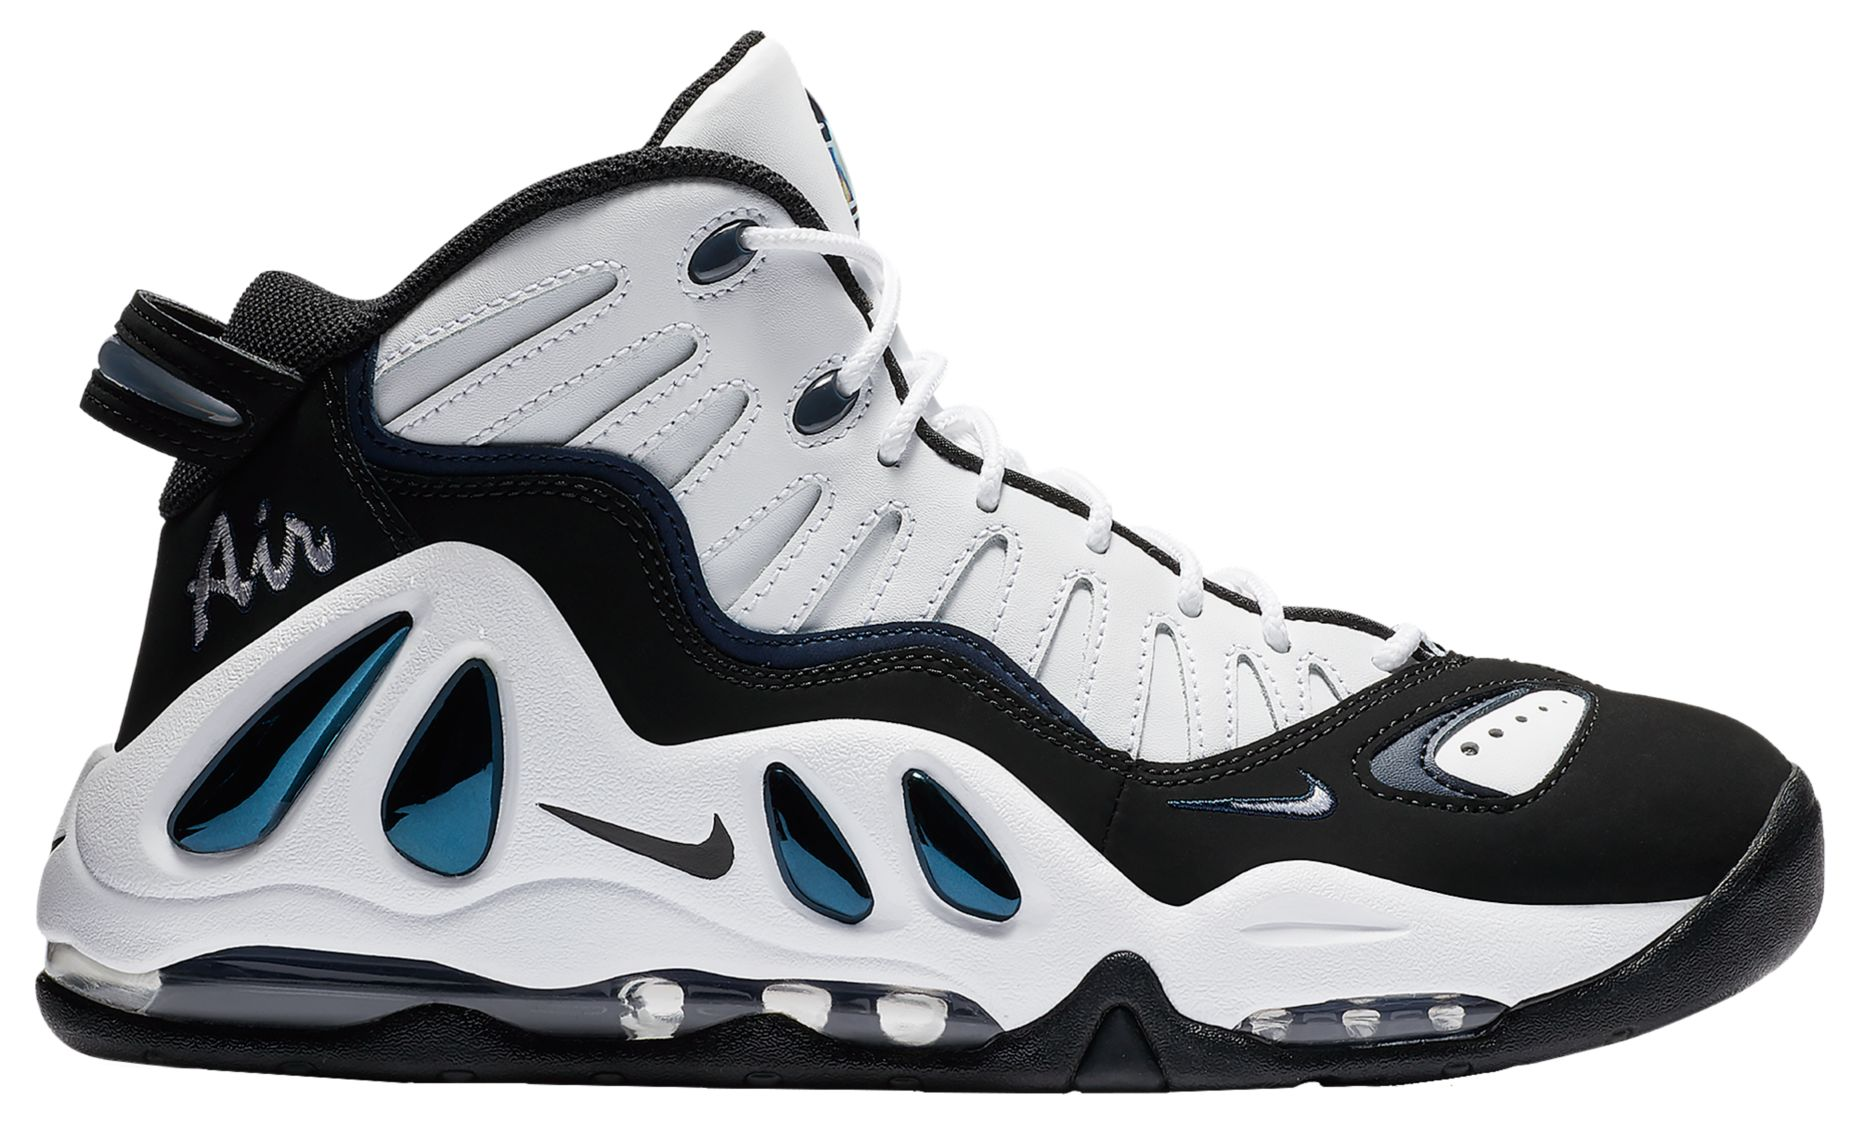 nike air max uptempo 97 2018